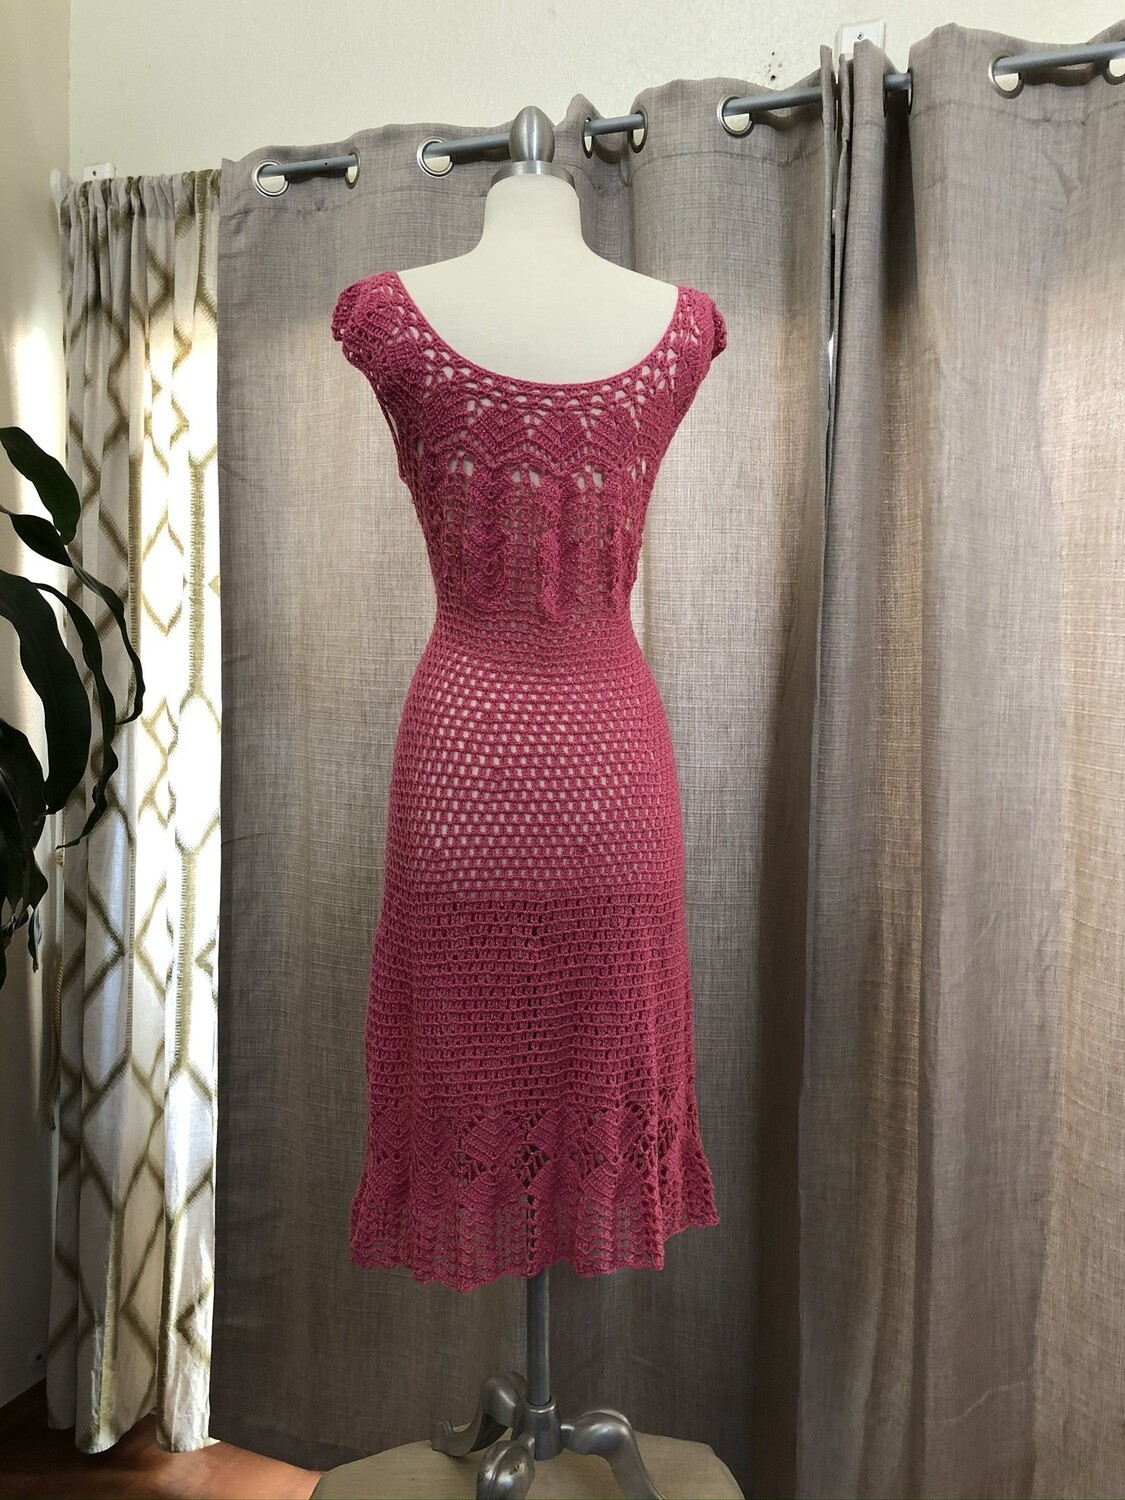 Crocheted Dress with Crystal Yarn Acrylic with Glitter